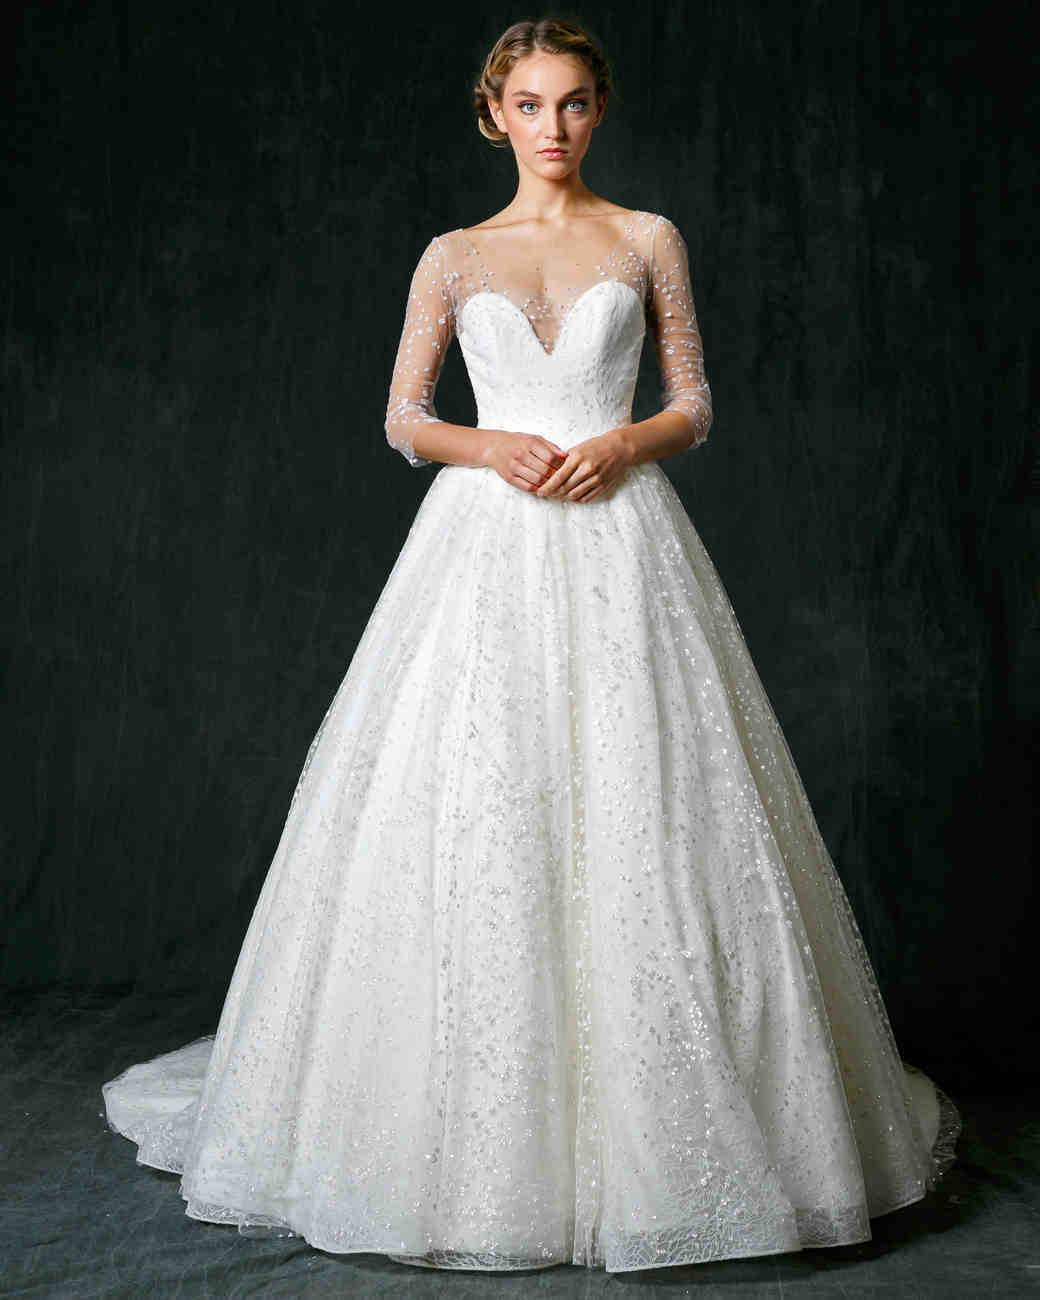 Sareh Nouri Fall 2017 Wedding Dress Collection